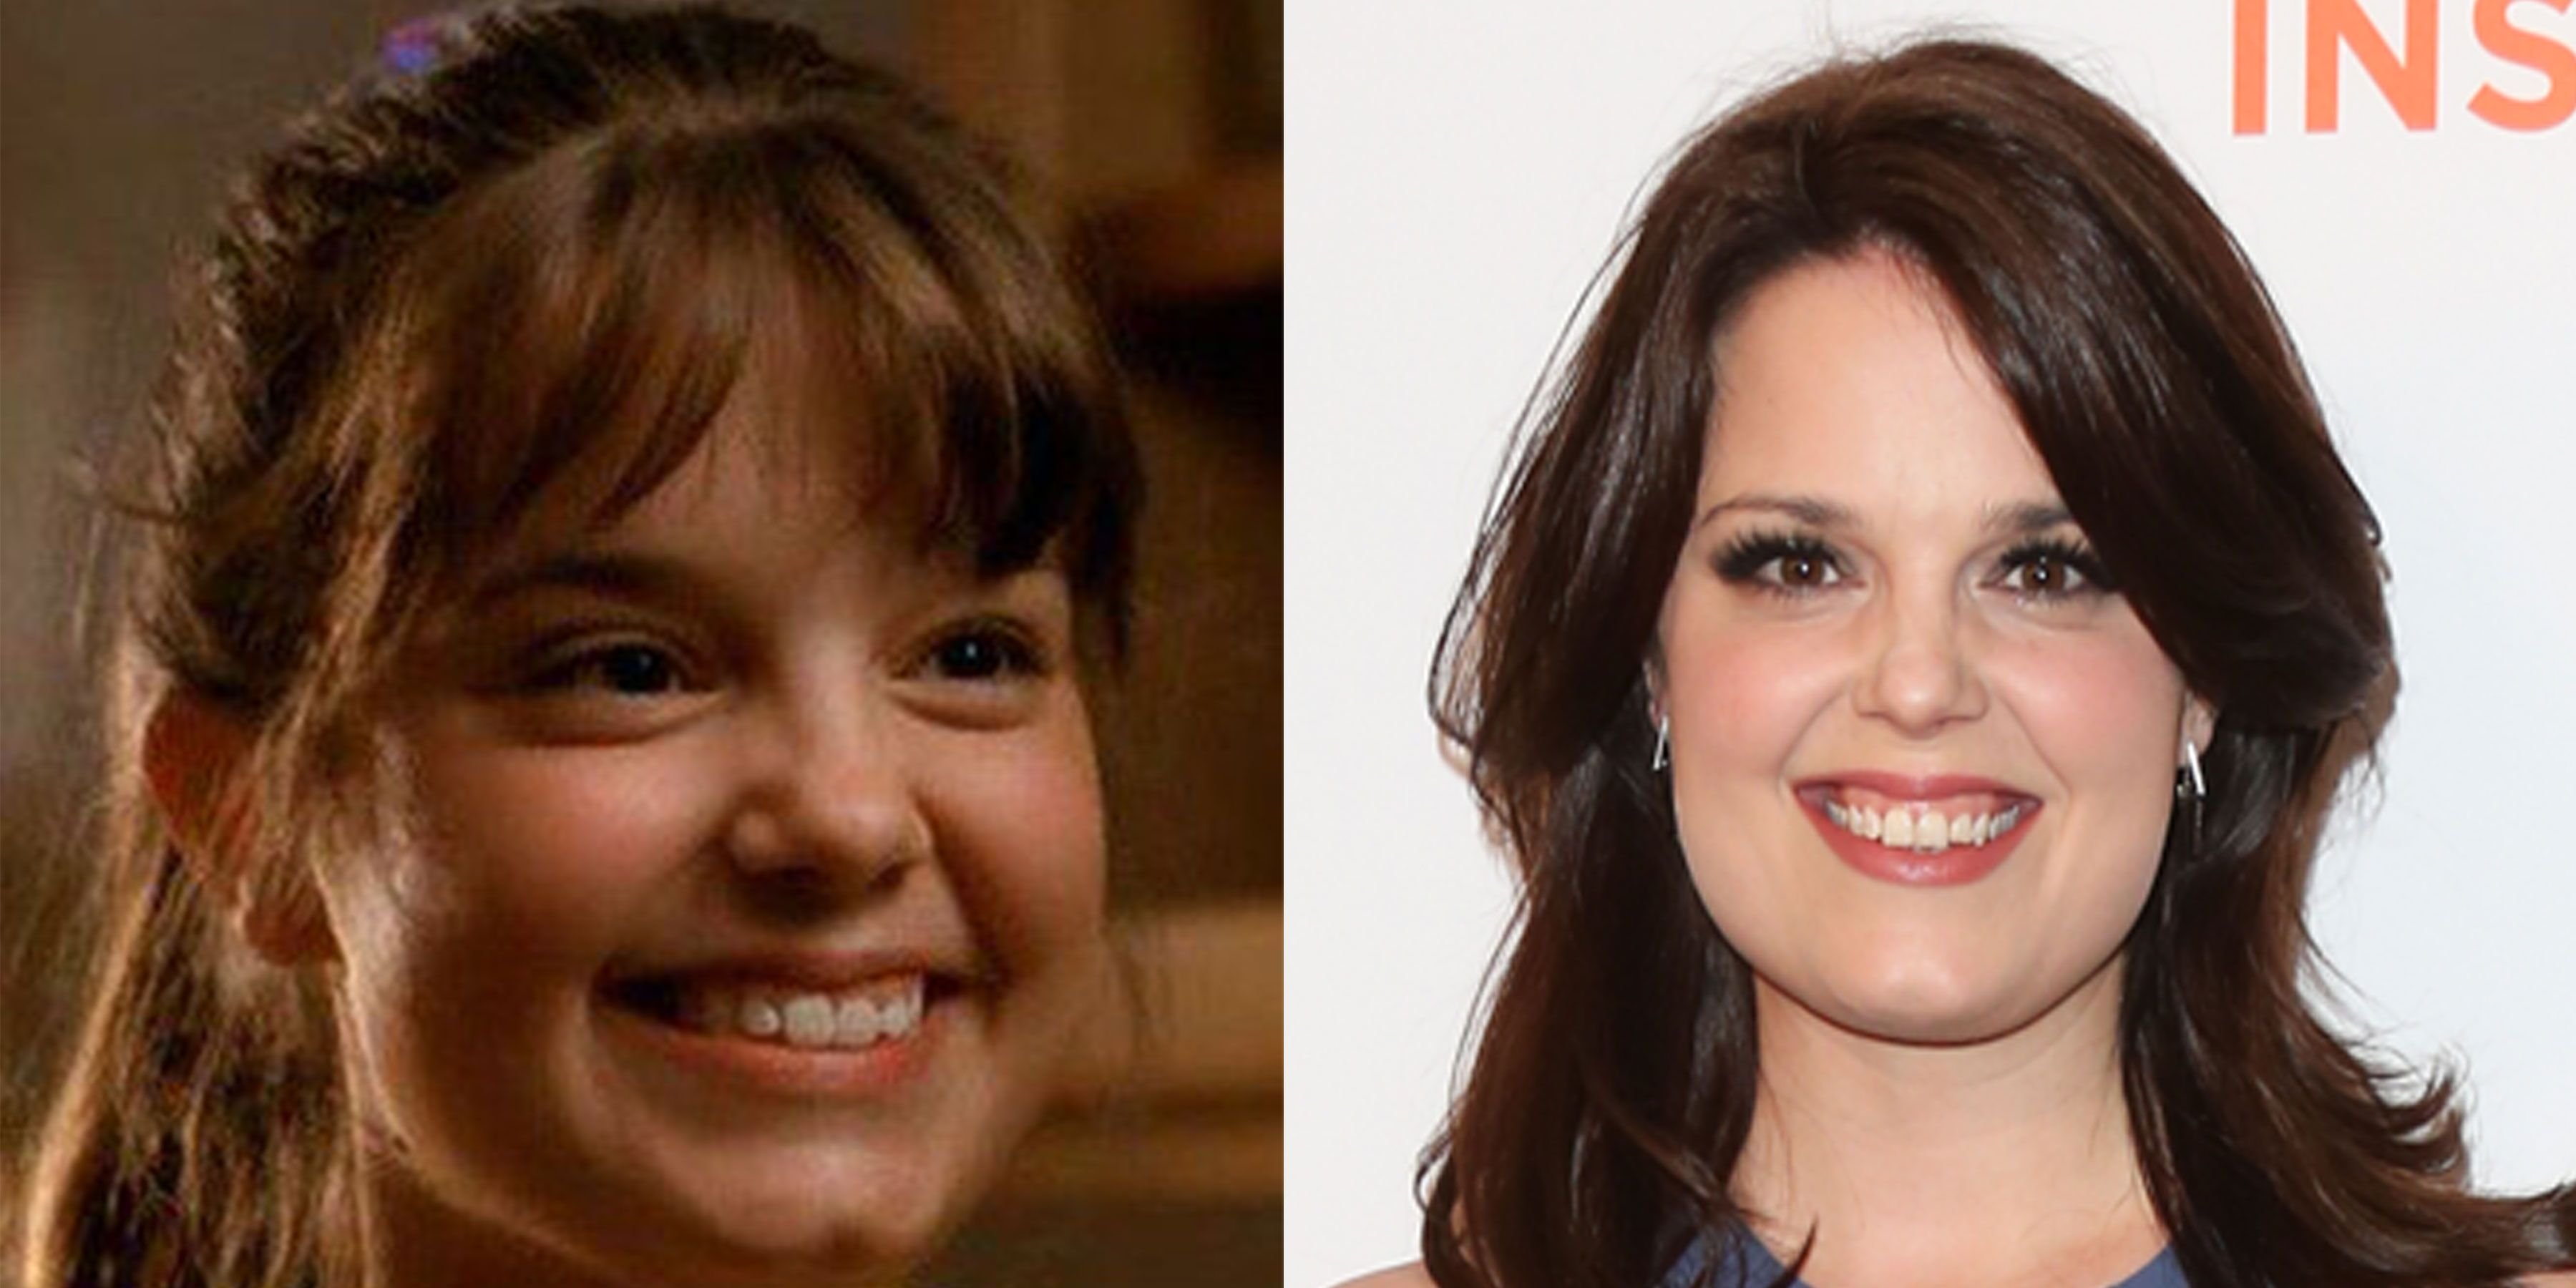 halloweentown' cast now 2018 - where kimberly j. brown and joey